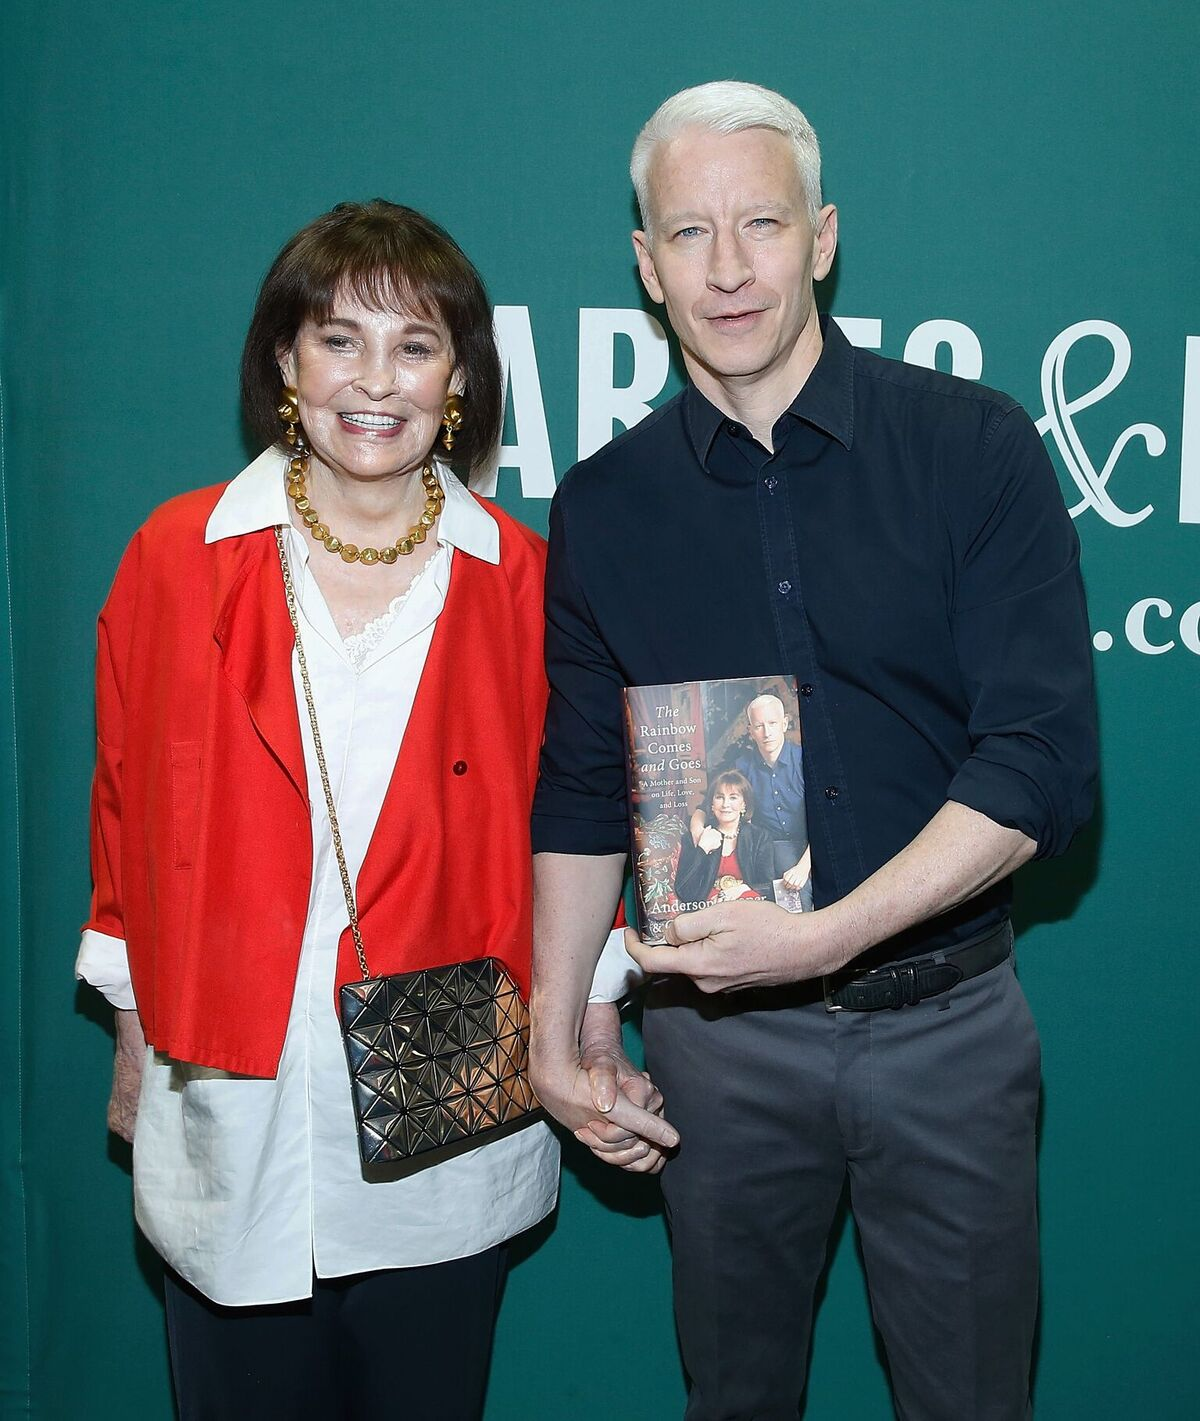 Gloria Vanderbilt and Anderson Cooper in conversation at Barnes & Noble Union Square on April 7, 2016, in New York City | Photo: John Lamparski/Getty Images